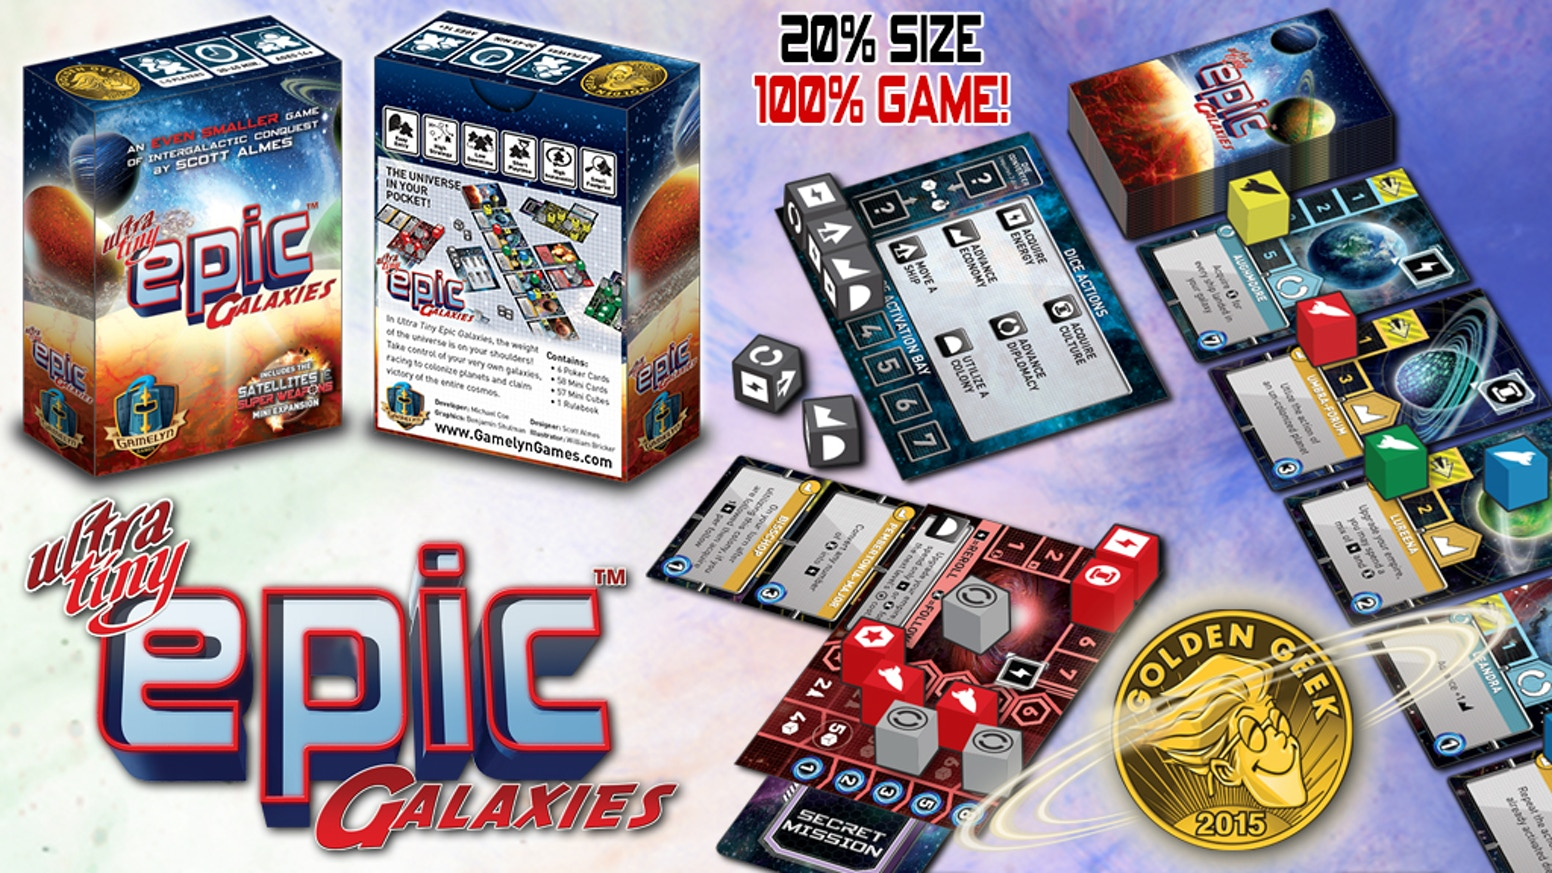 The award winning Tiny Epic Galaxies will now fit in your shirt pocket! Supports 1-5 Players at 30-45 minutes.